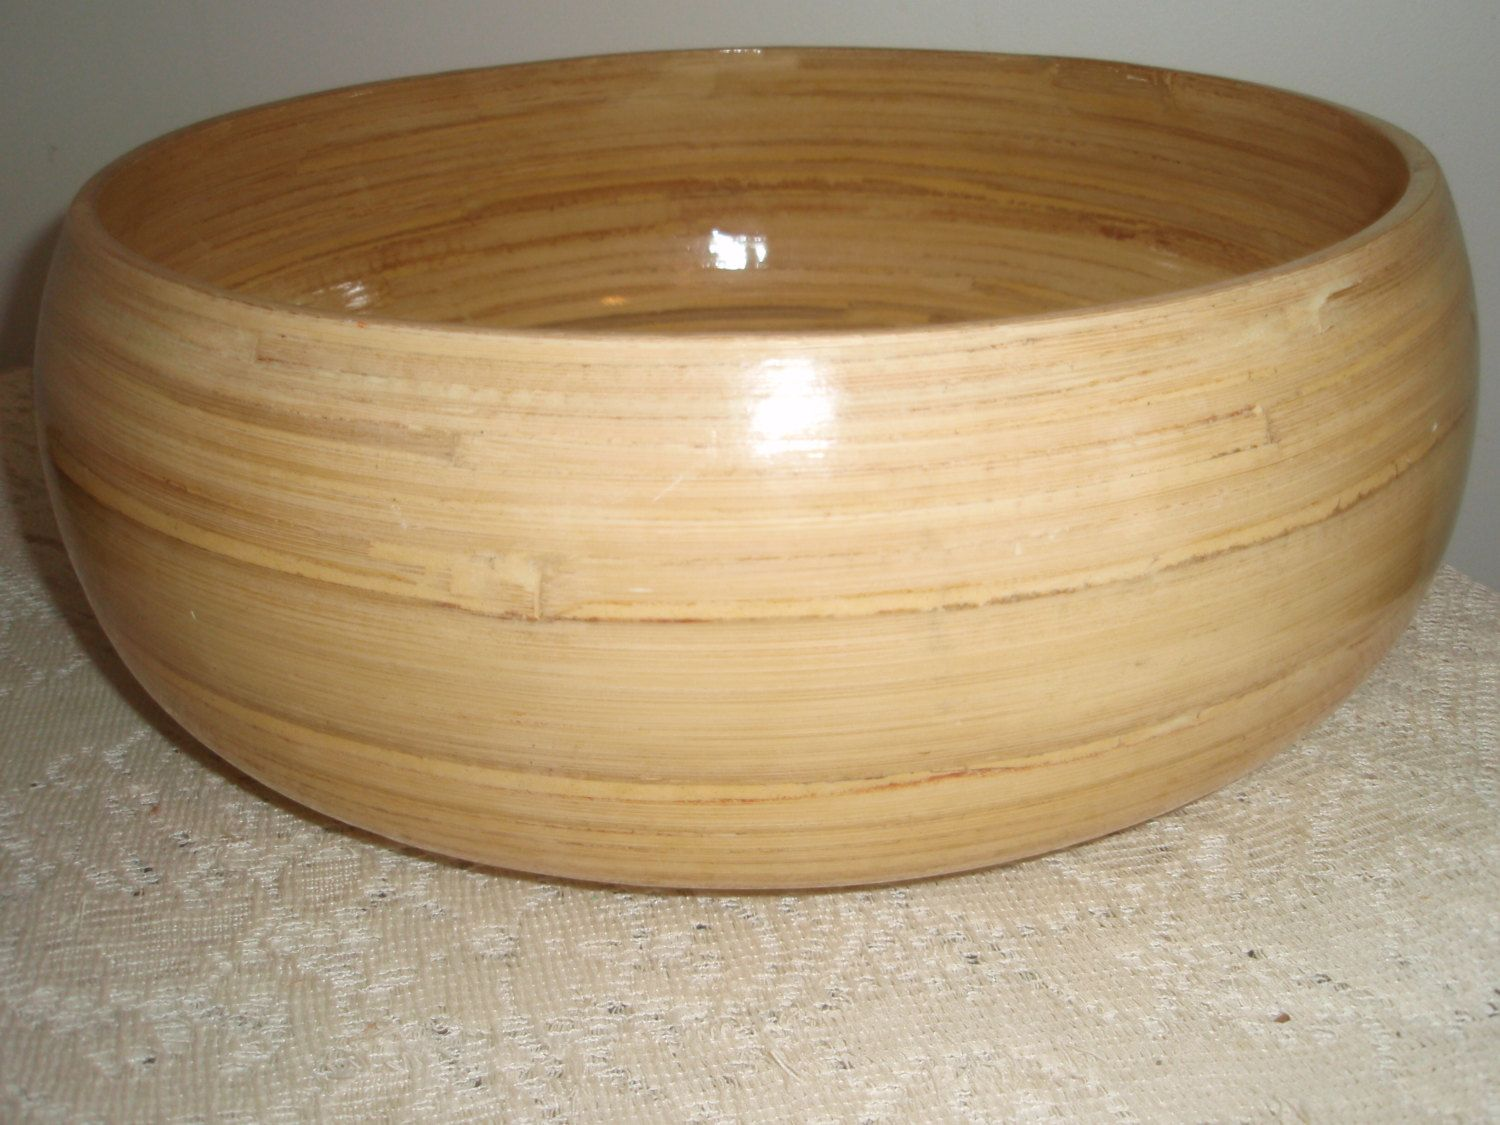 Large Wooden Serving Bowl Bamboo Wood Salad Fruit 12 X 5 By Socialmarystreasures On Etsy